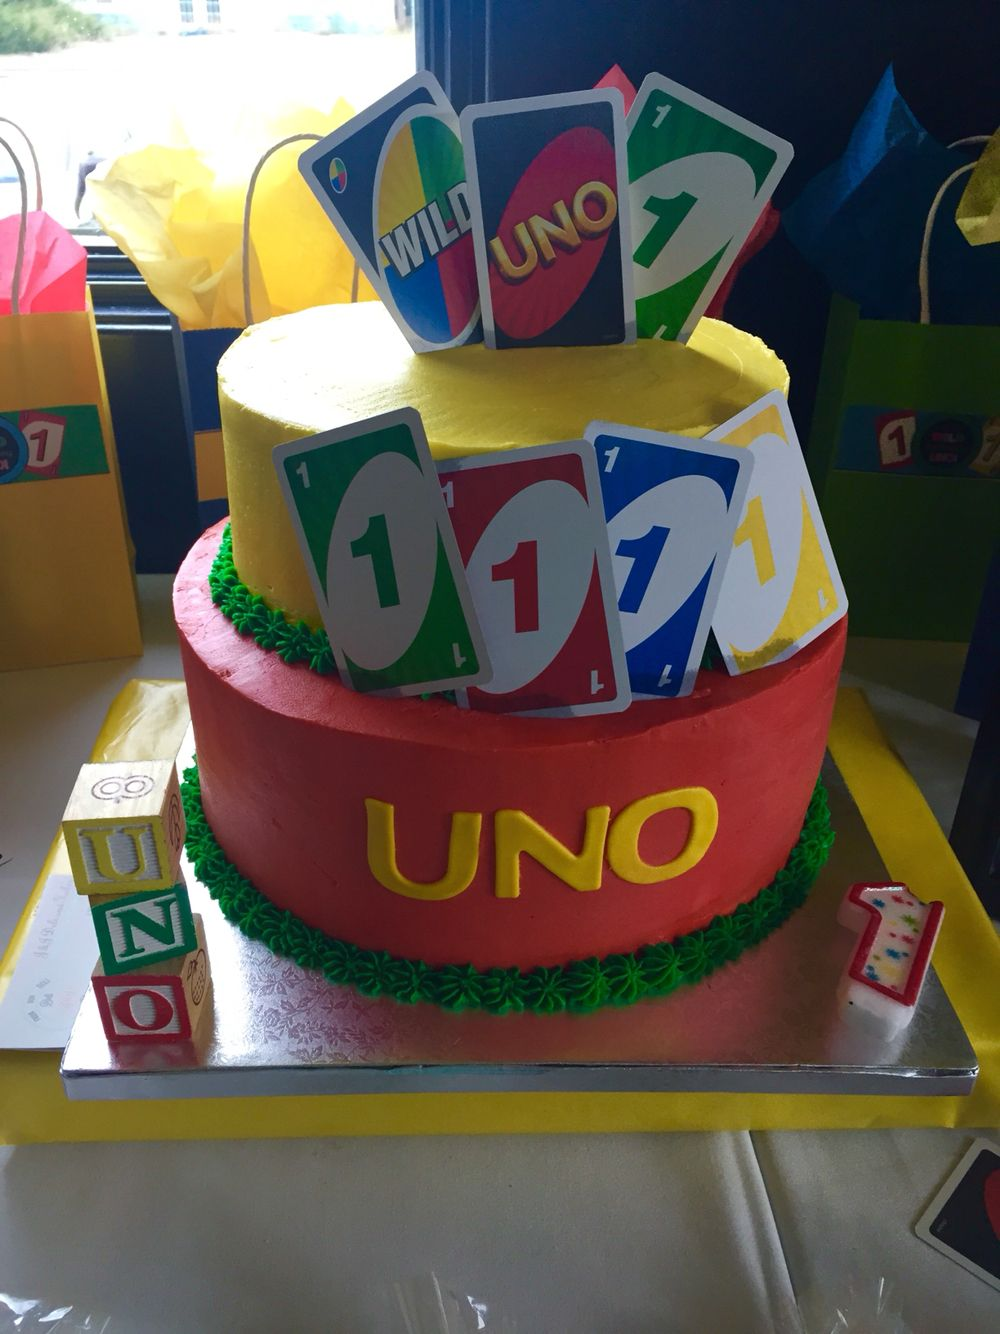 Uno Cake Uno Birthday Party Pinterest Cake Birthdays And - Cake birthday games